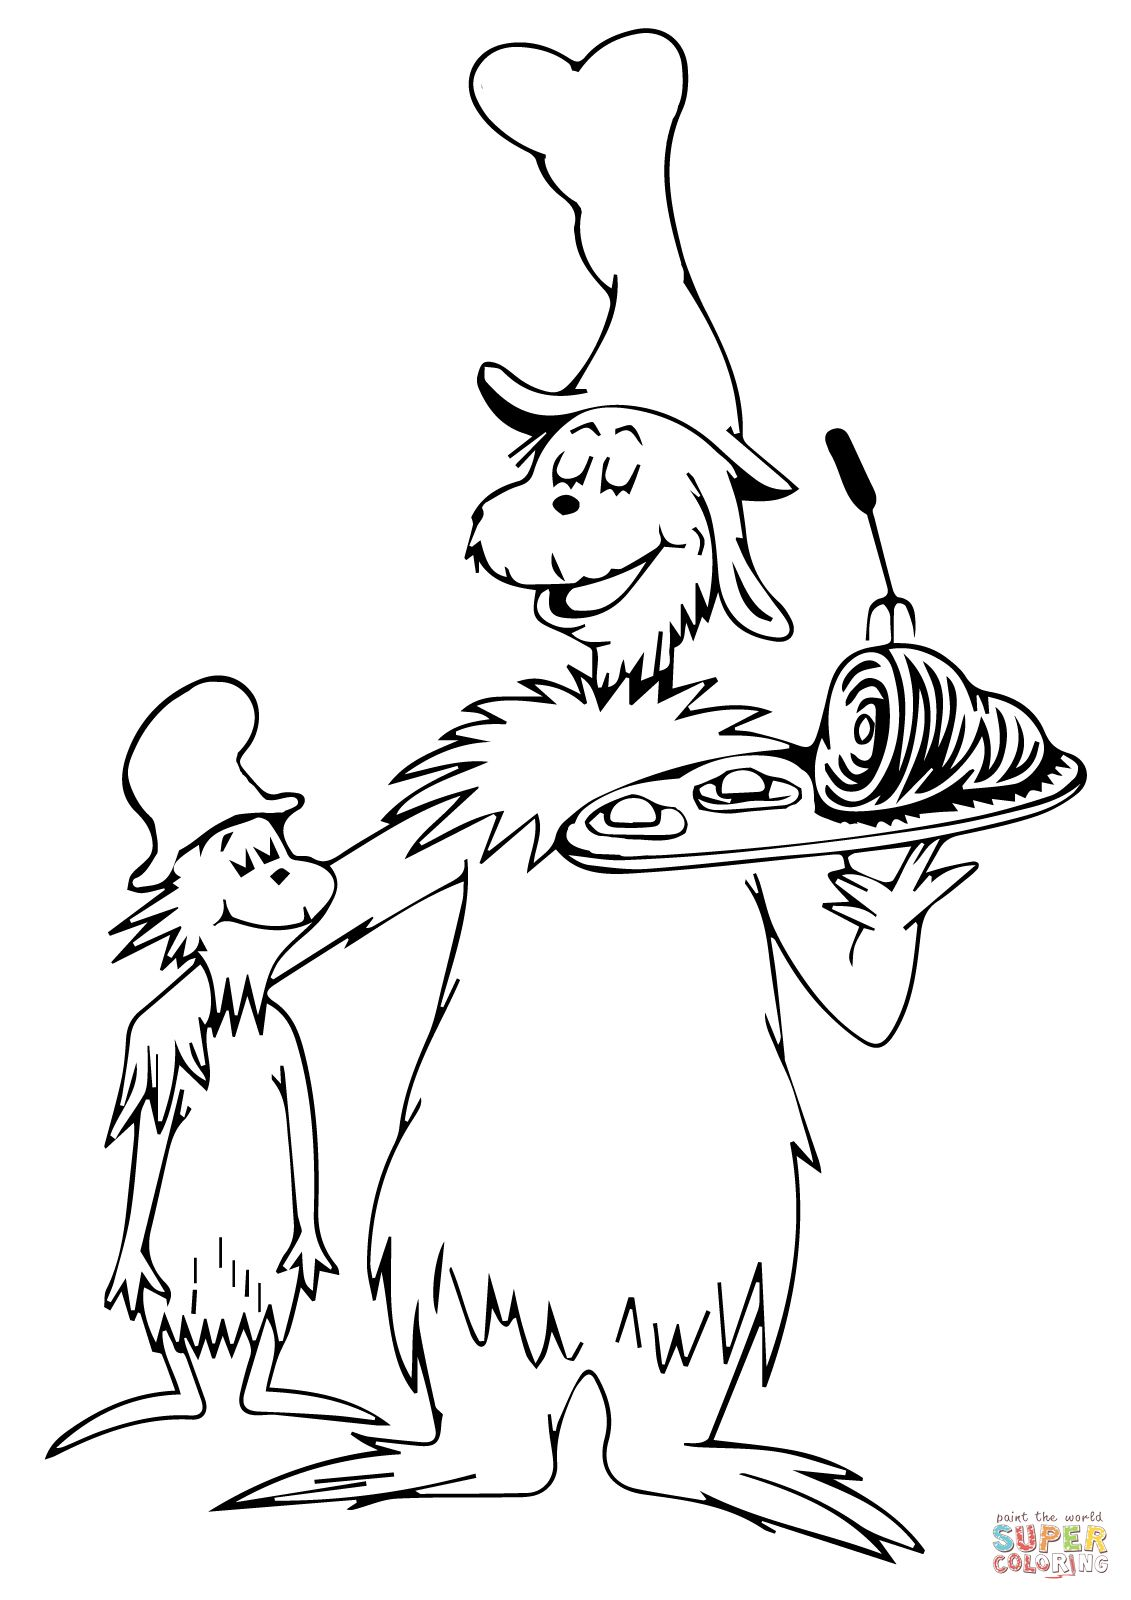 Green Eggs And Ham Coloring Page Dr Seuss Coloring Pages Dr